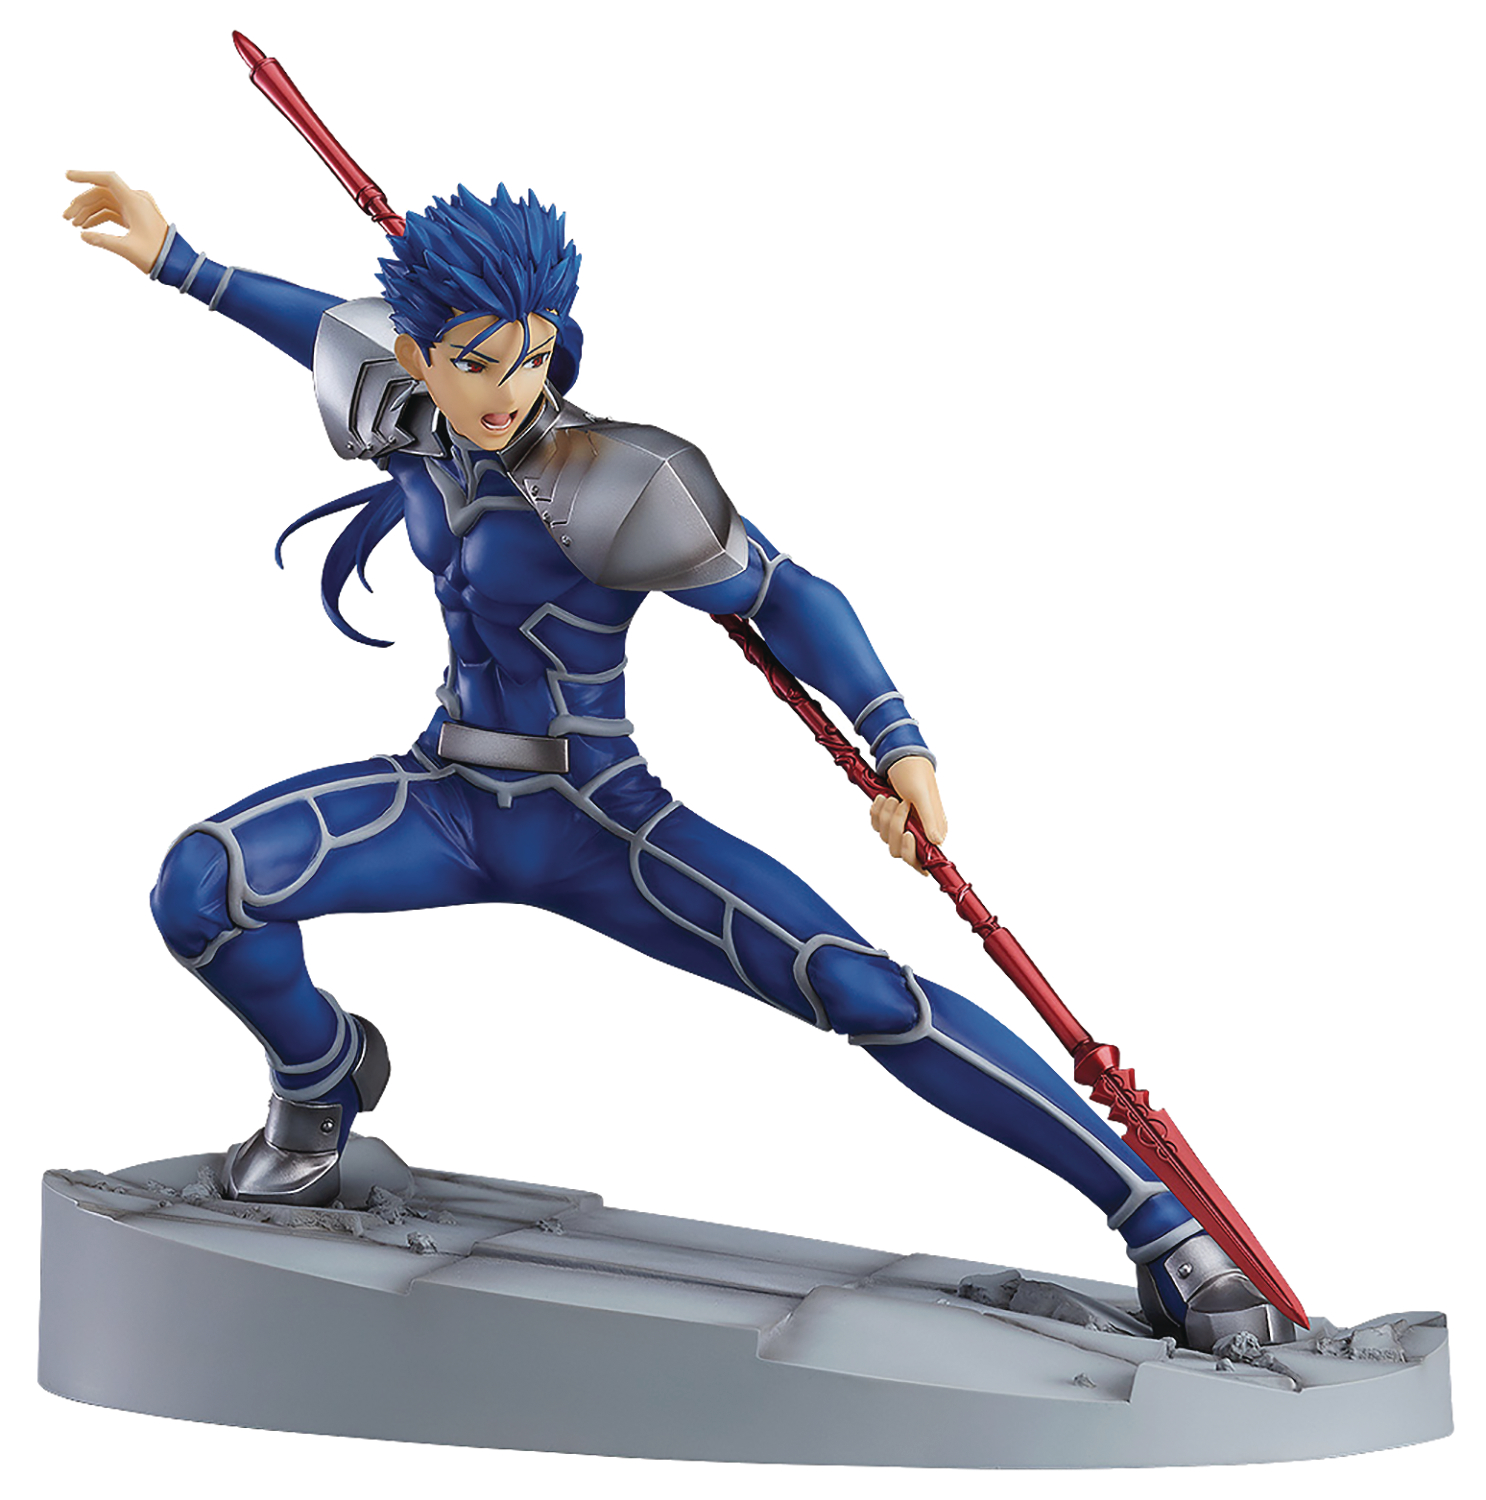 FATE GRAND ORDER LANCER CU CHULAINN 1/8 PVC FIG